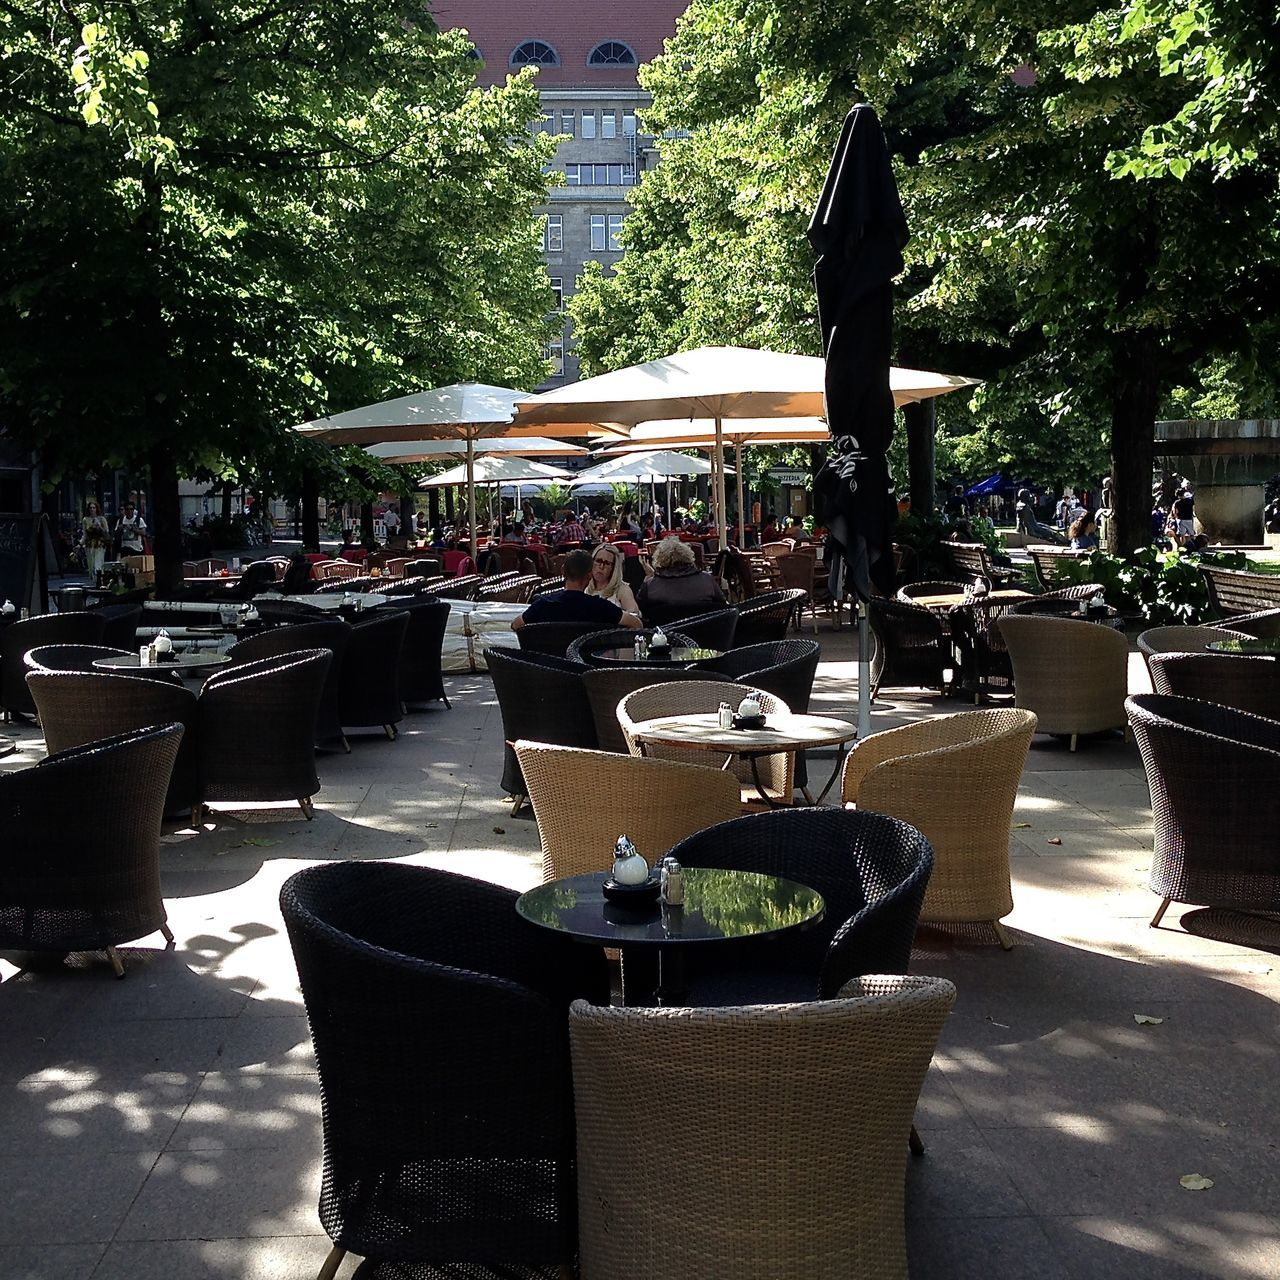 summer in berlin, street photography Architecture Berlin Berliner Ansichten Cafe Chair City Food Food And Drink Kadewe Outdoor Cafe Outdoors Parasol Potted Plant Relaxing Restaurant Sidewalk Cafe Streetphotography Summer Summer In The City Sunlight Sunshine Table Take Your Place Tree